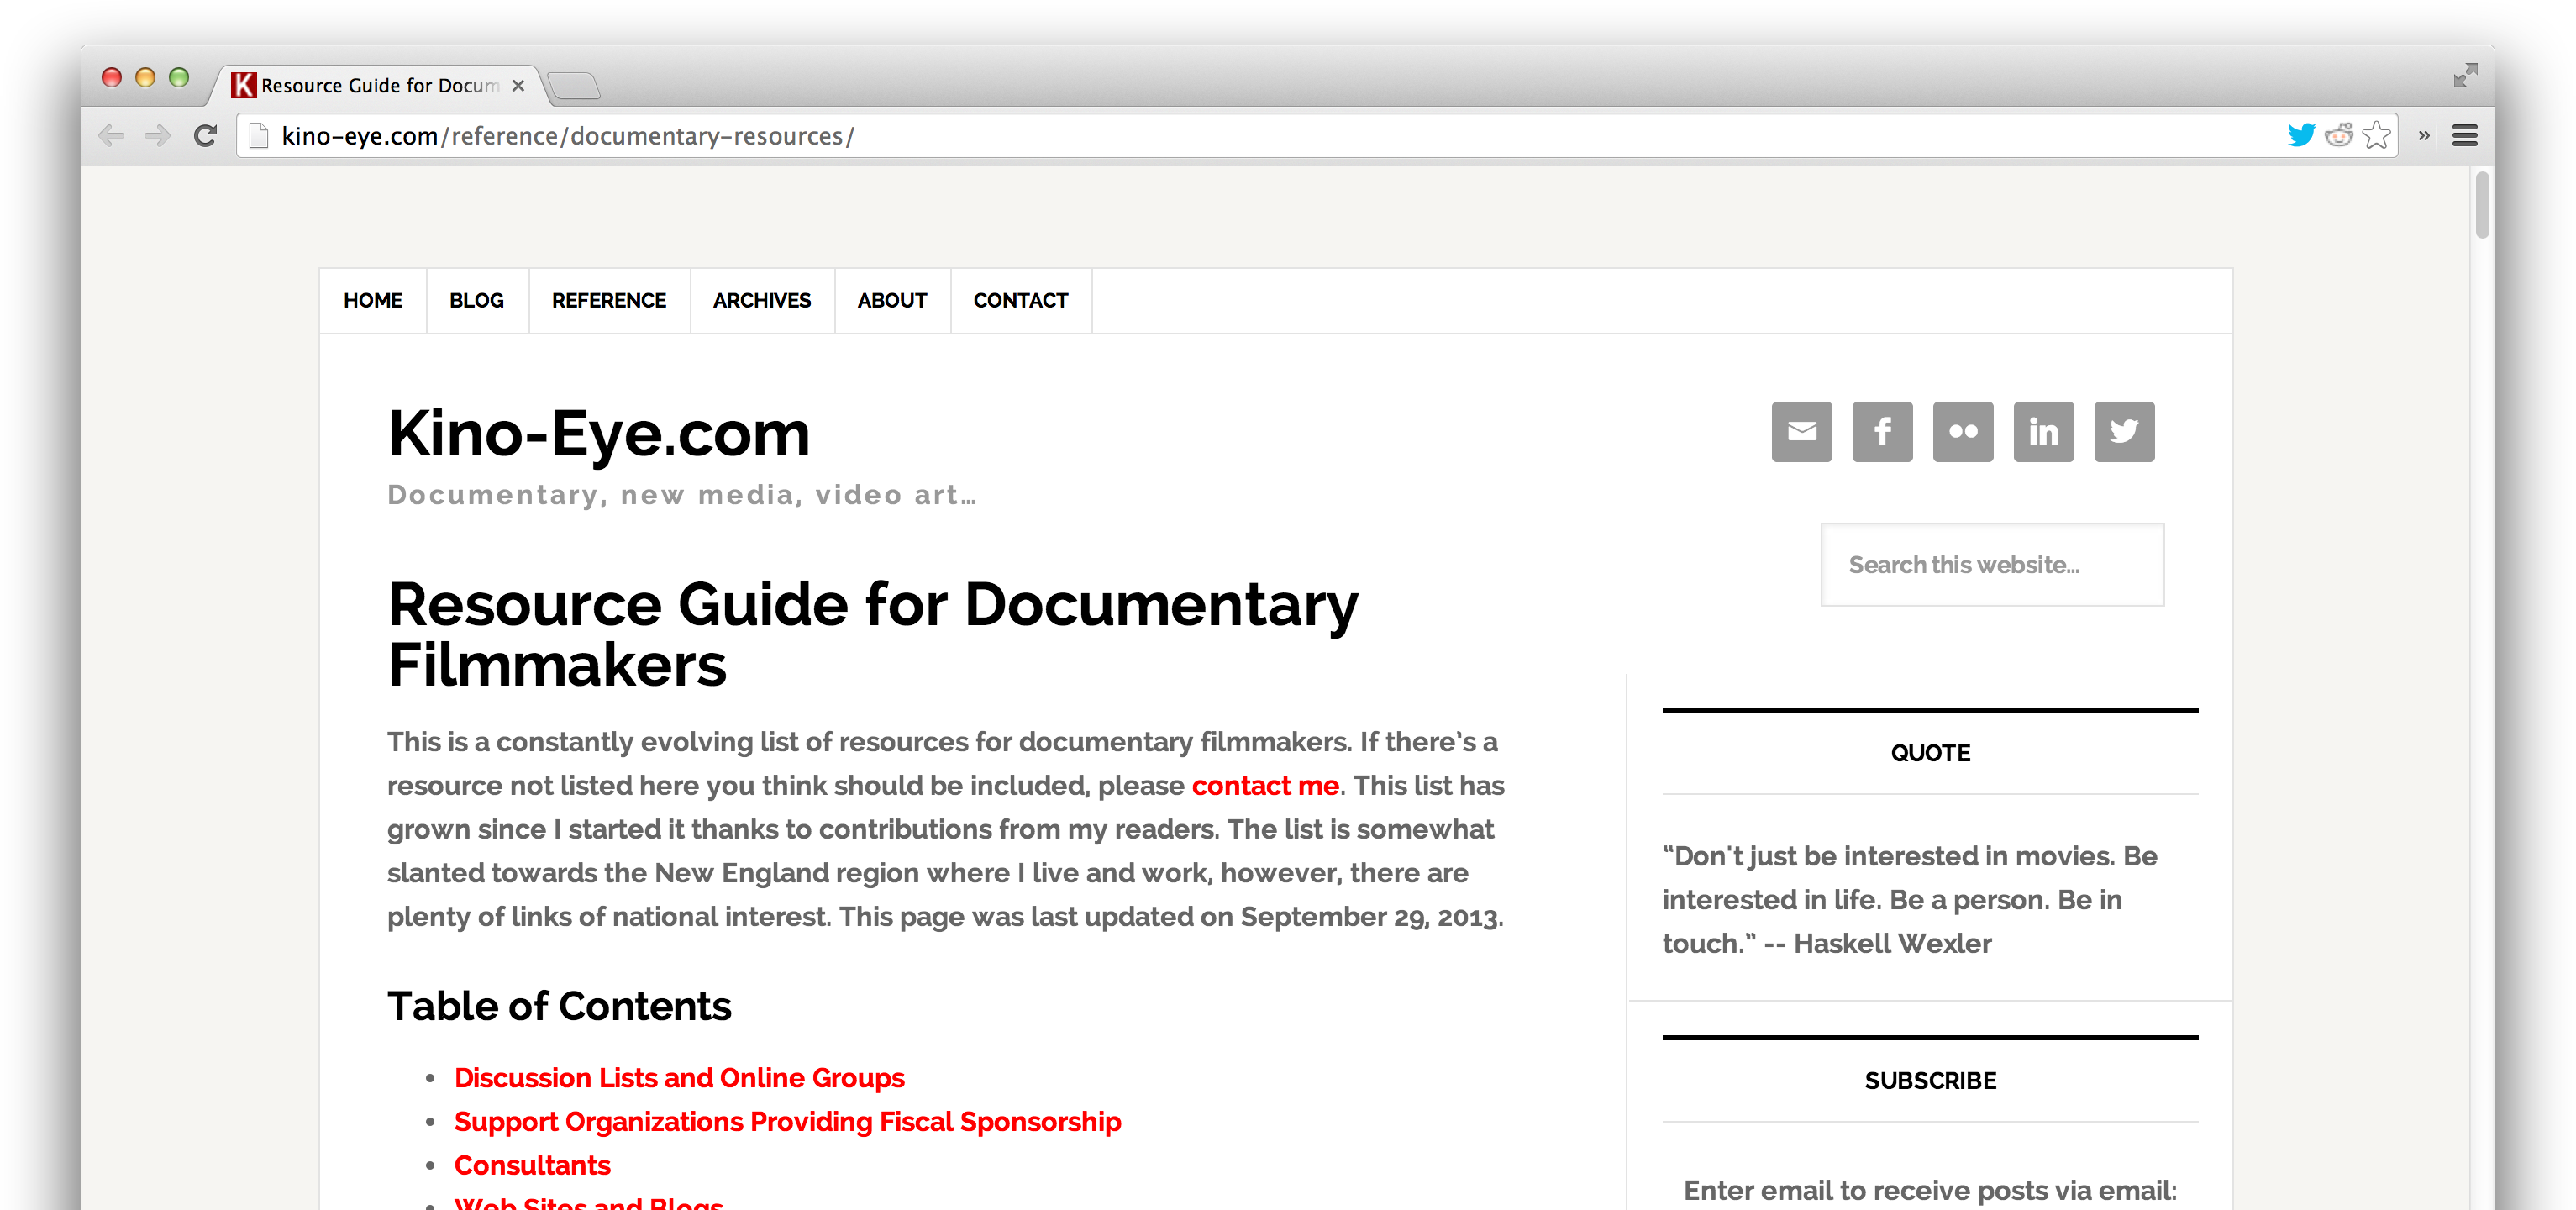 Free Forms and Legal Resources for Filmmakers & Video Pros